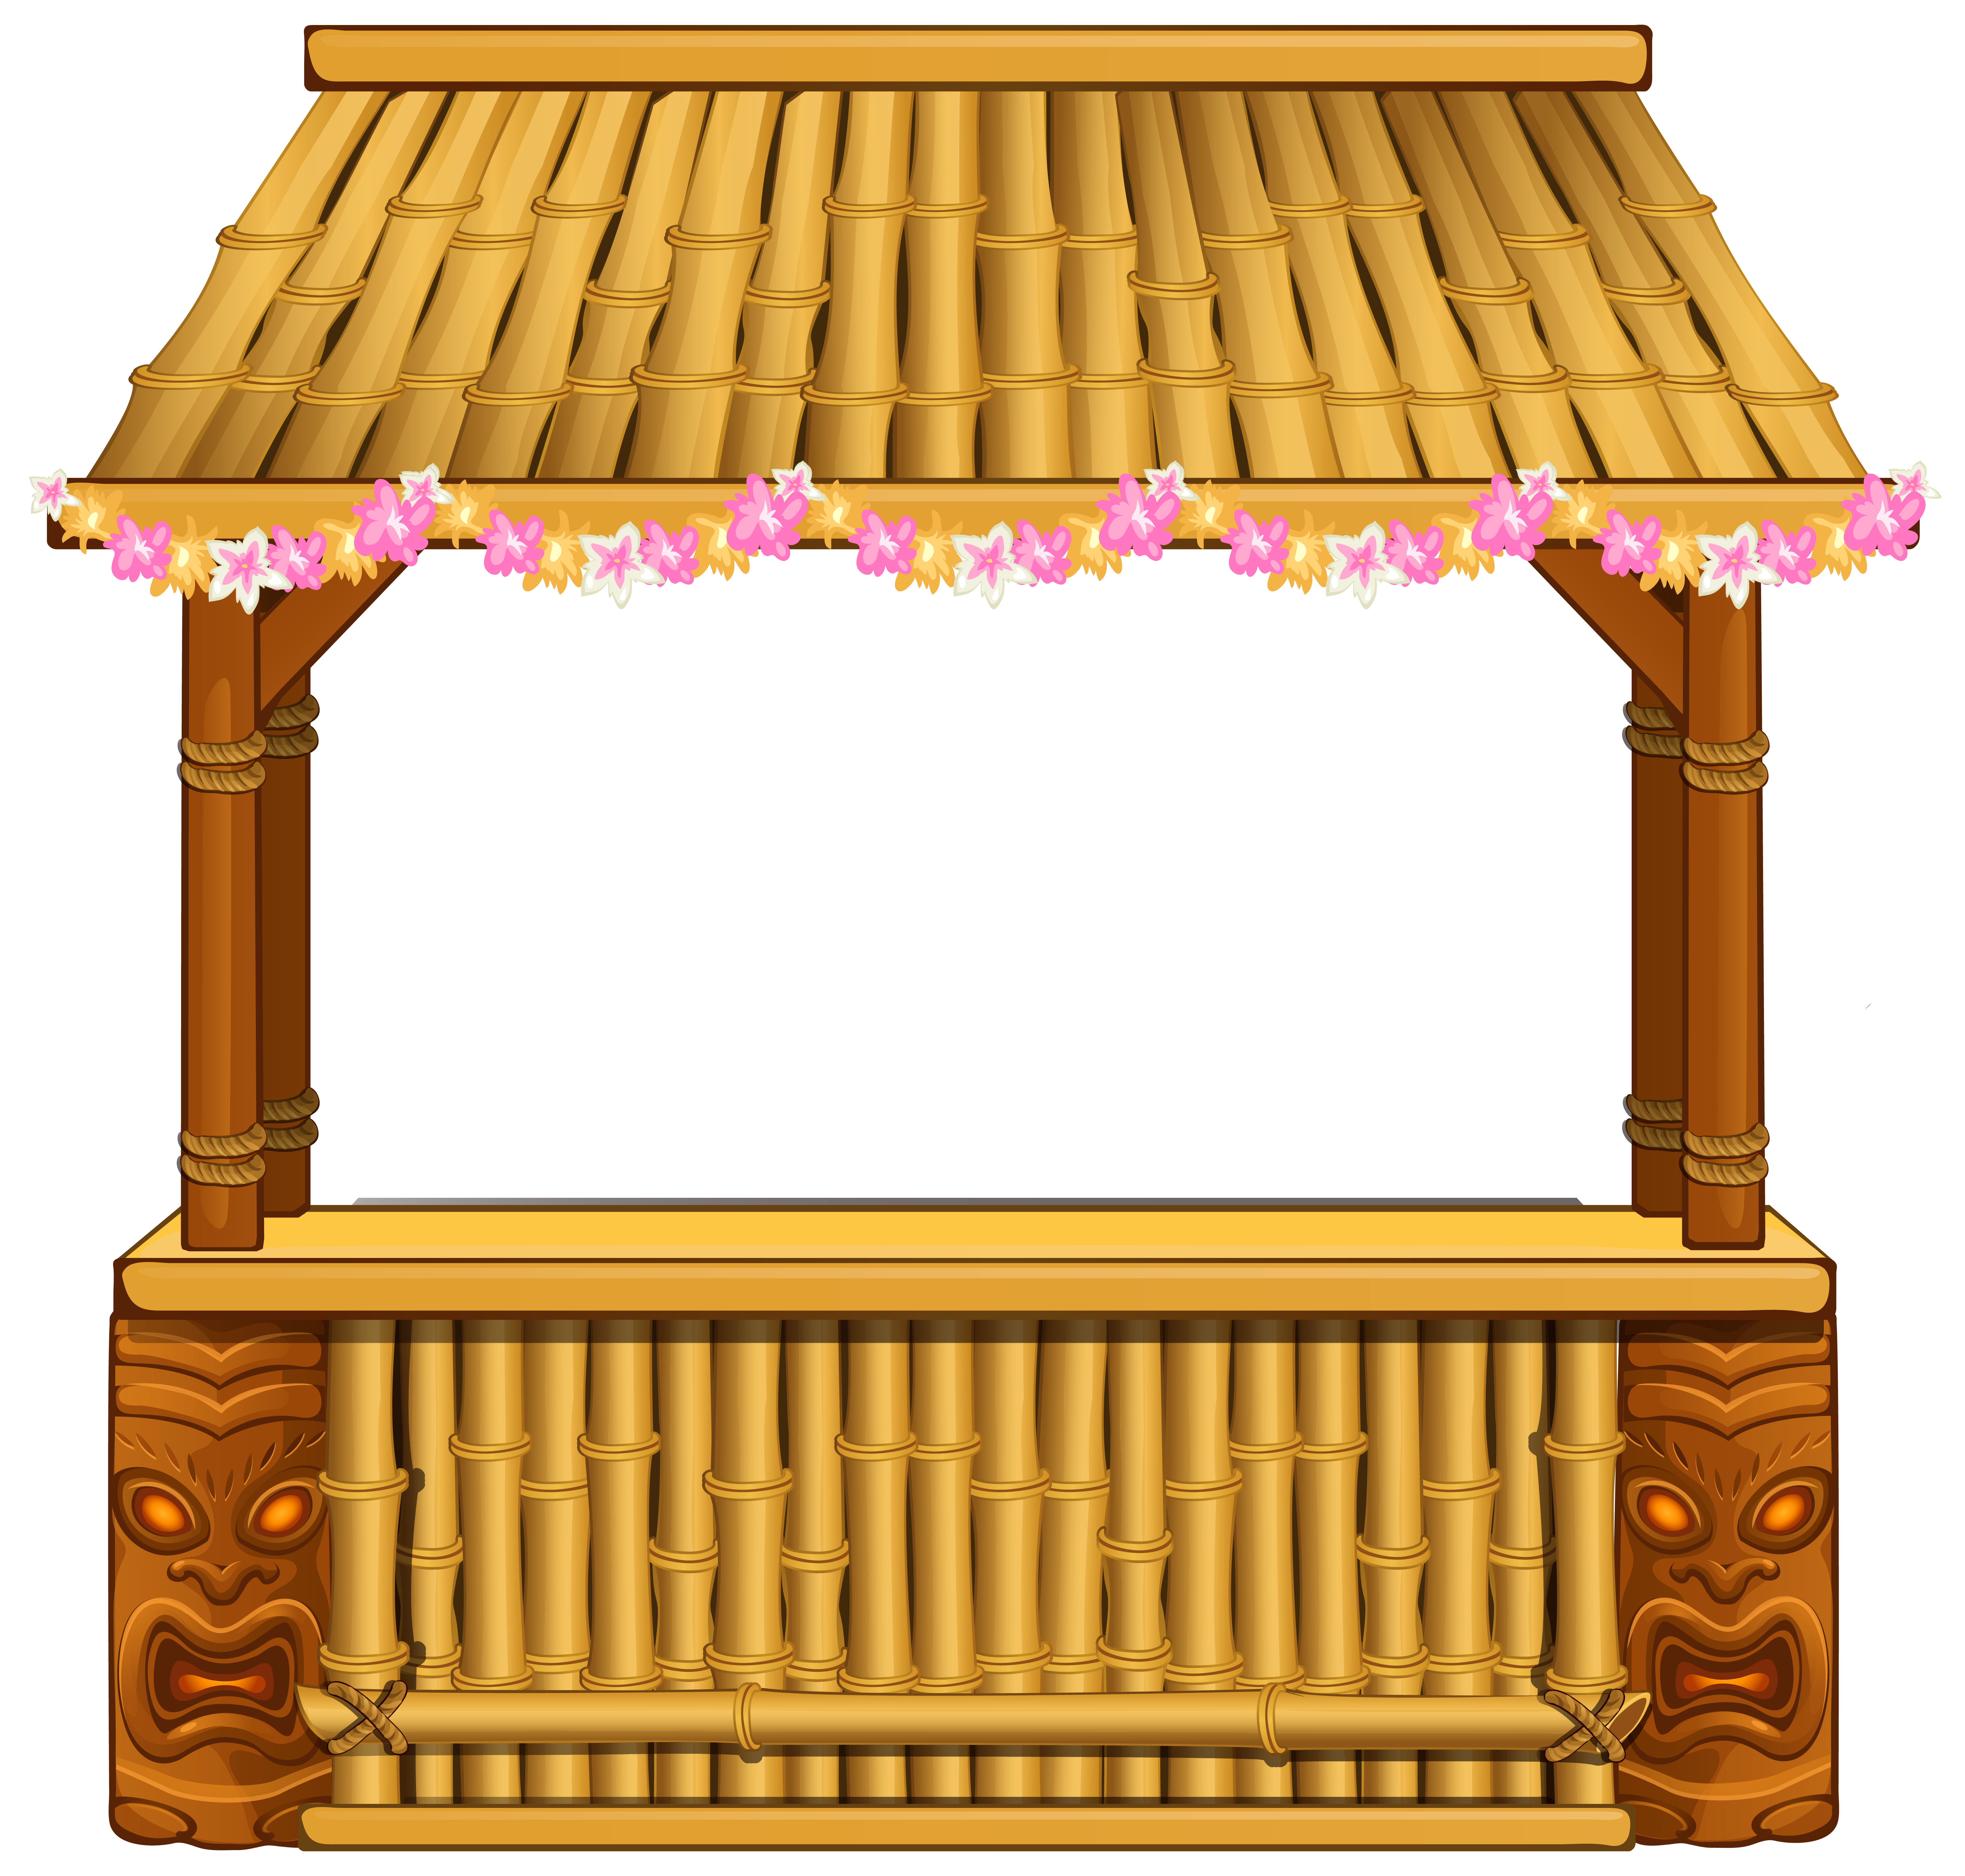 Free Tiki Bar Cliparts, Download Free Clip Art, Free Clip.